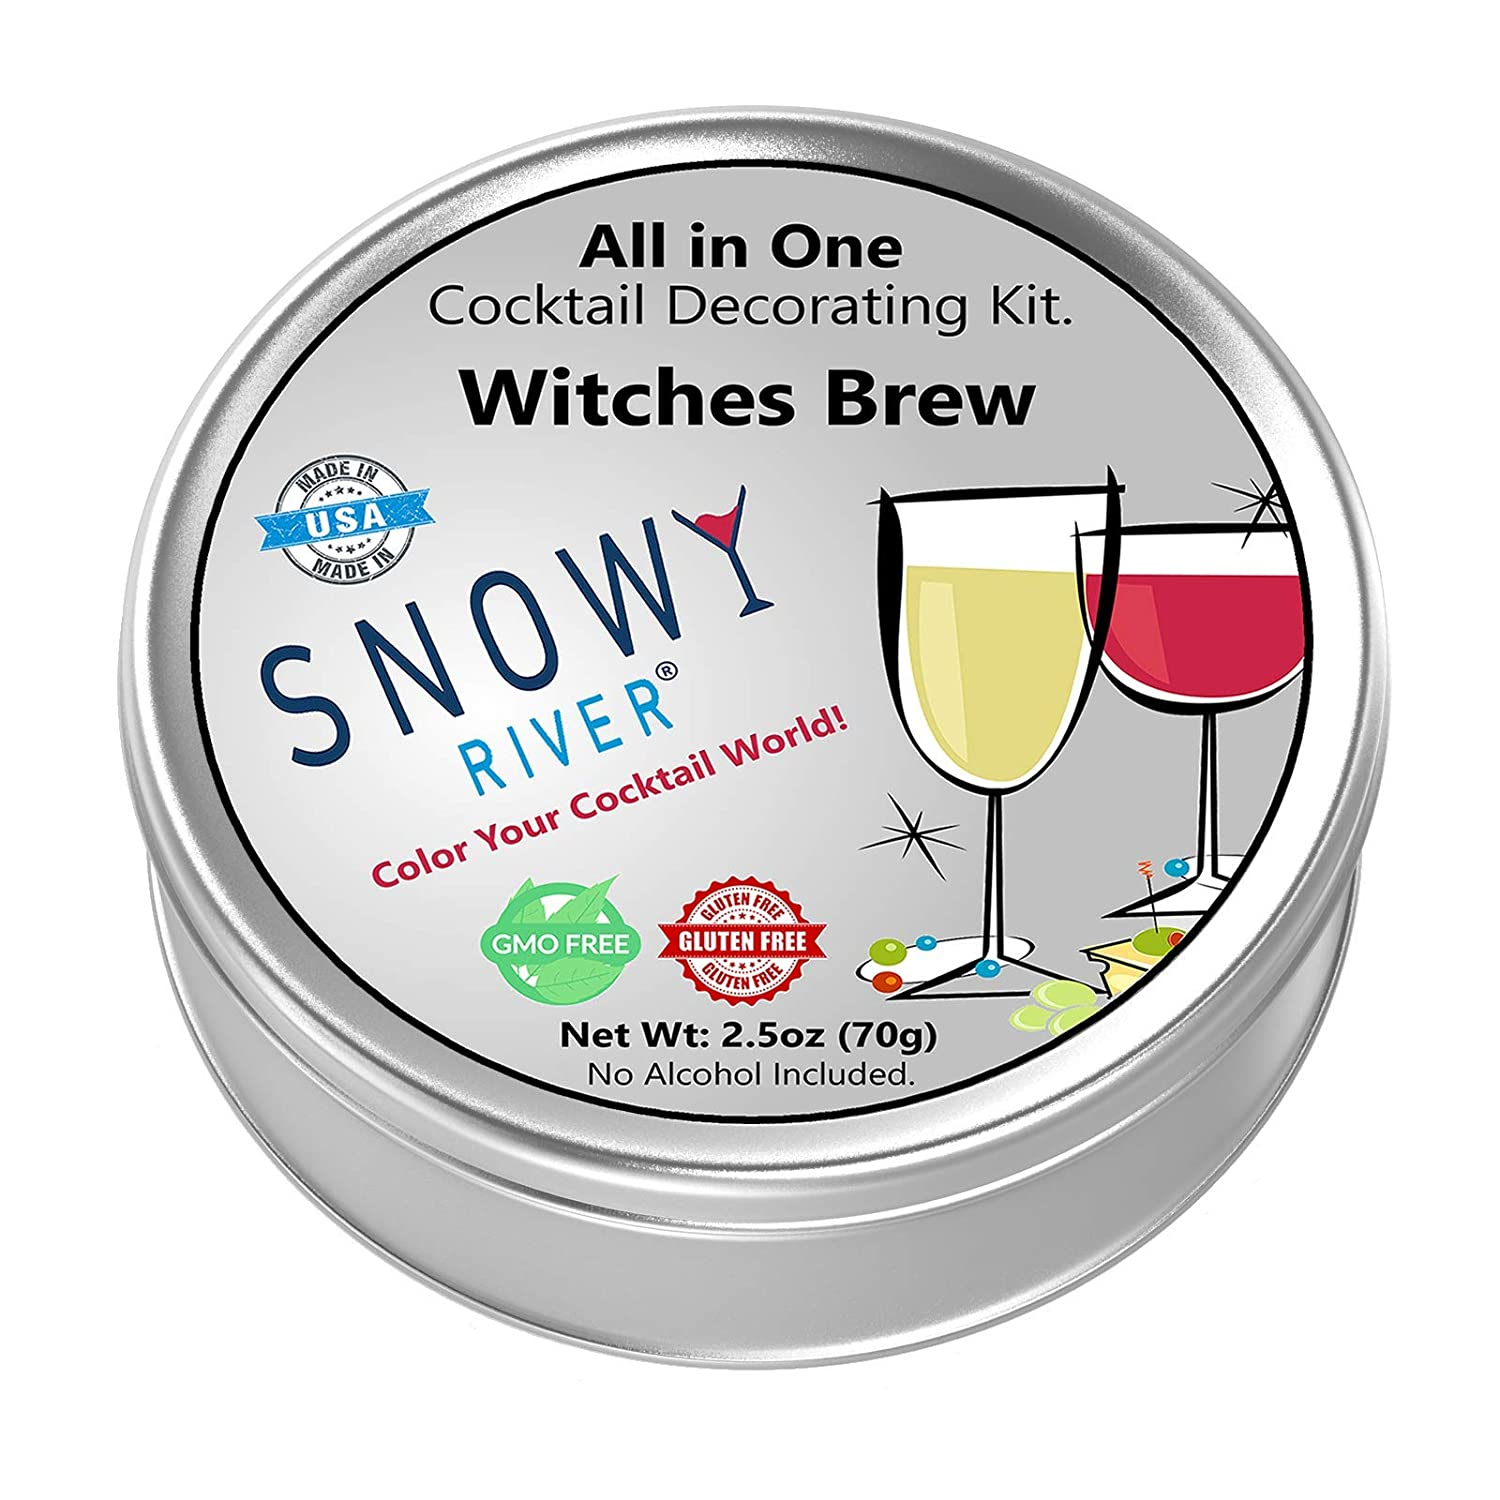 Amazon Com Snowy River Witches Brew Cocktail Decorating Kit All Natural Cocktail Sugar And Cocktail Glitter Decorating Gift Pack With Recipe Card Grocery Gourmet Food